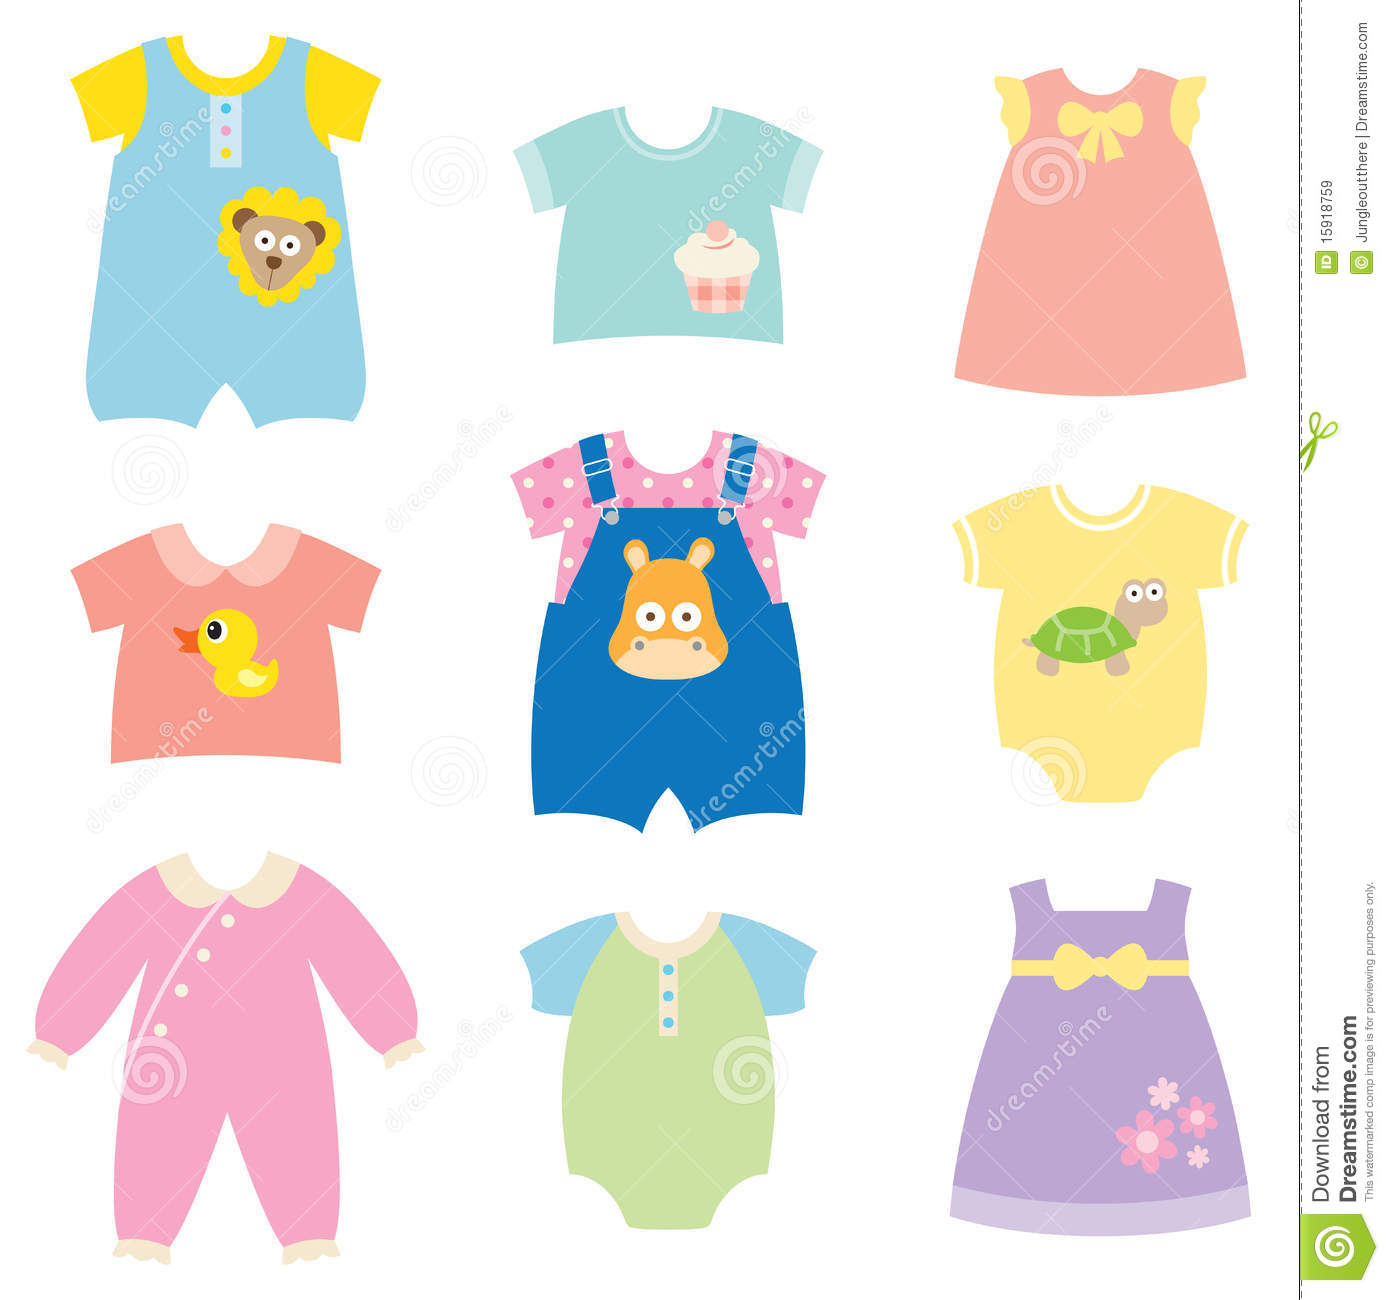 Baby clothes clipart